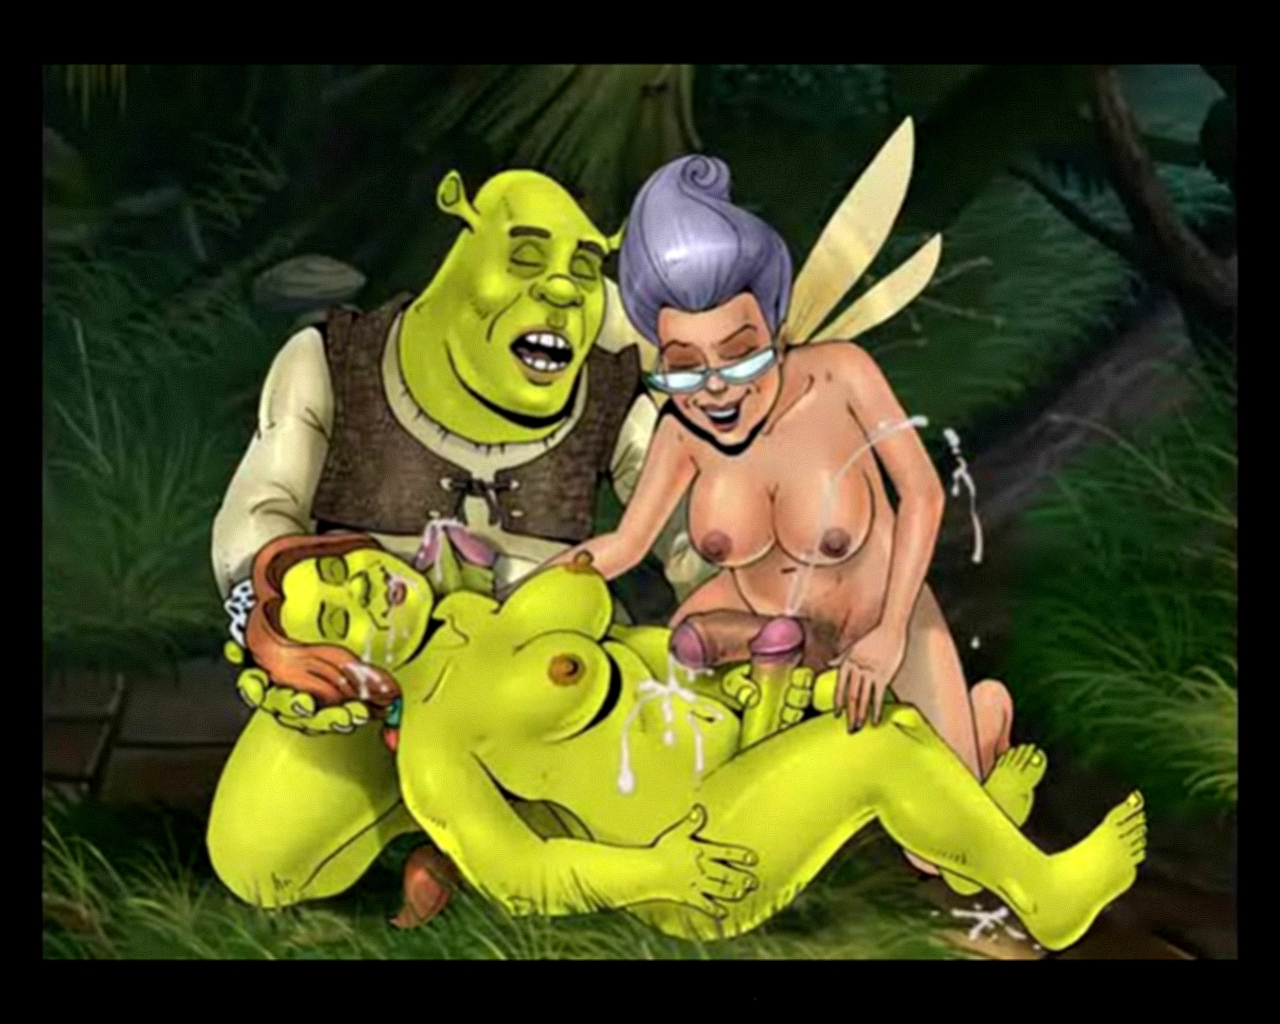 Fairies with ogre sex erotic images